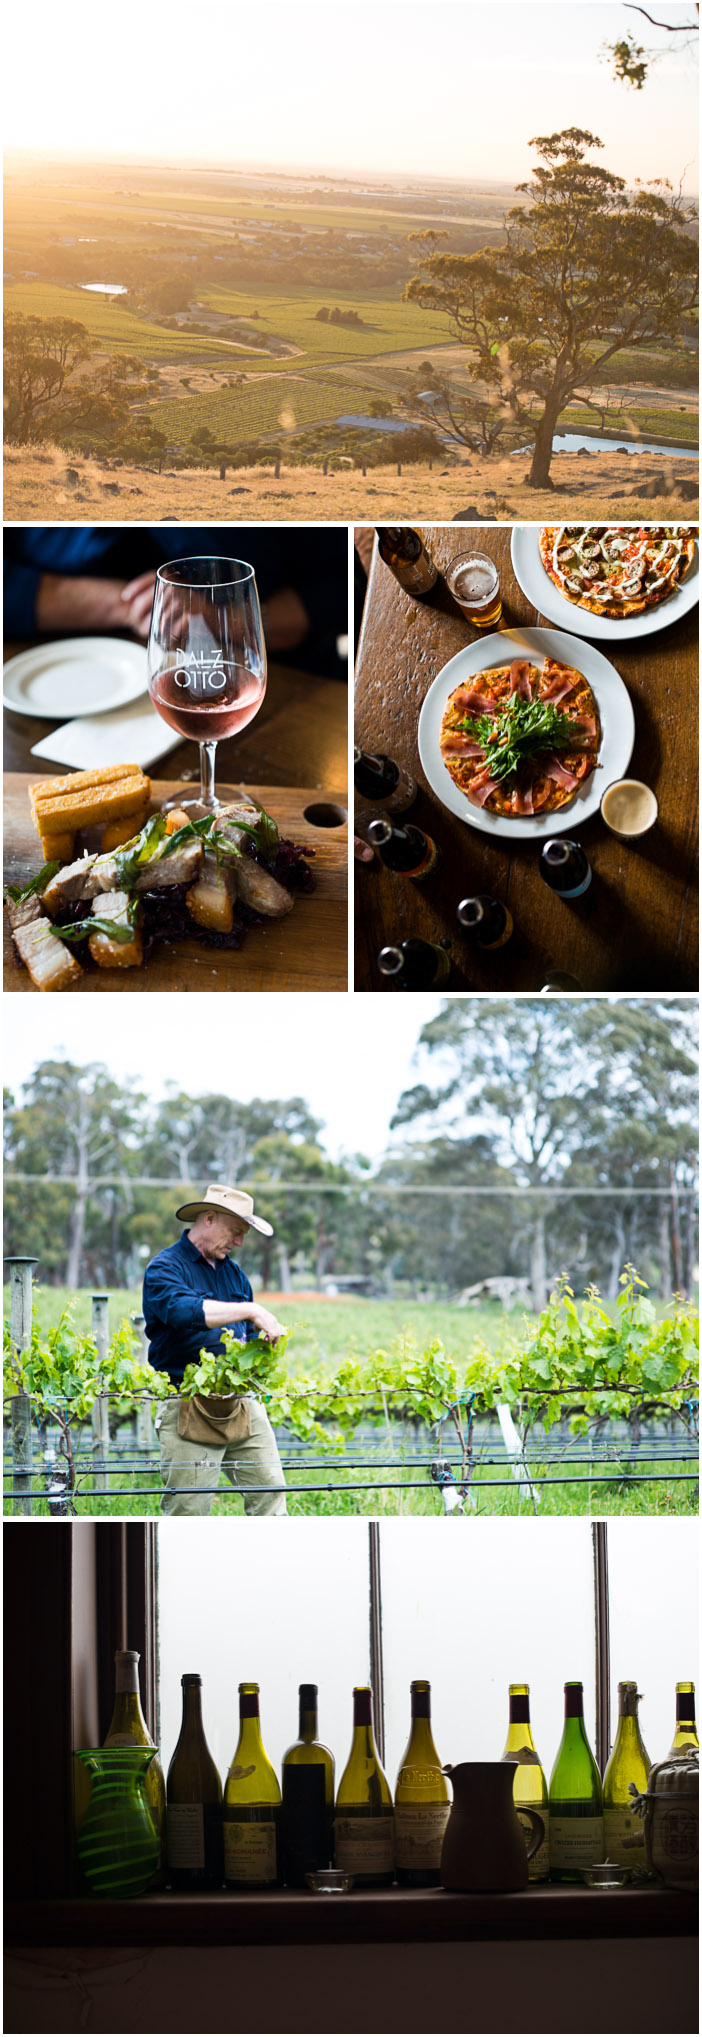 Australia Food & Wine Stories on WhiteOnRiceCouple.com